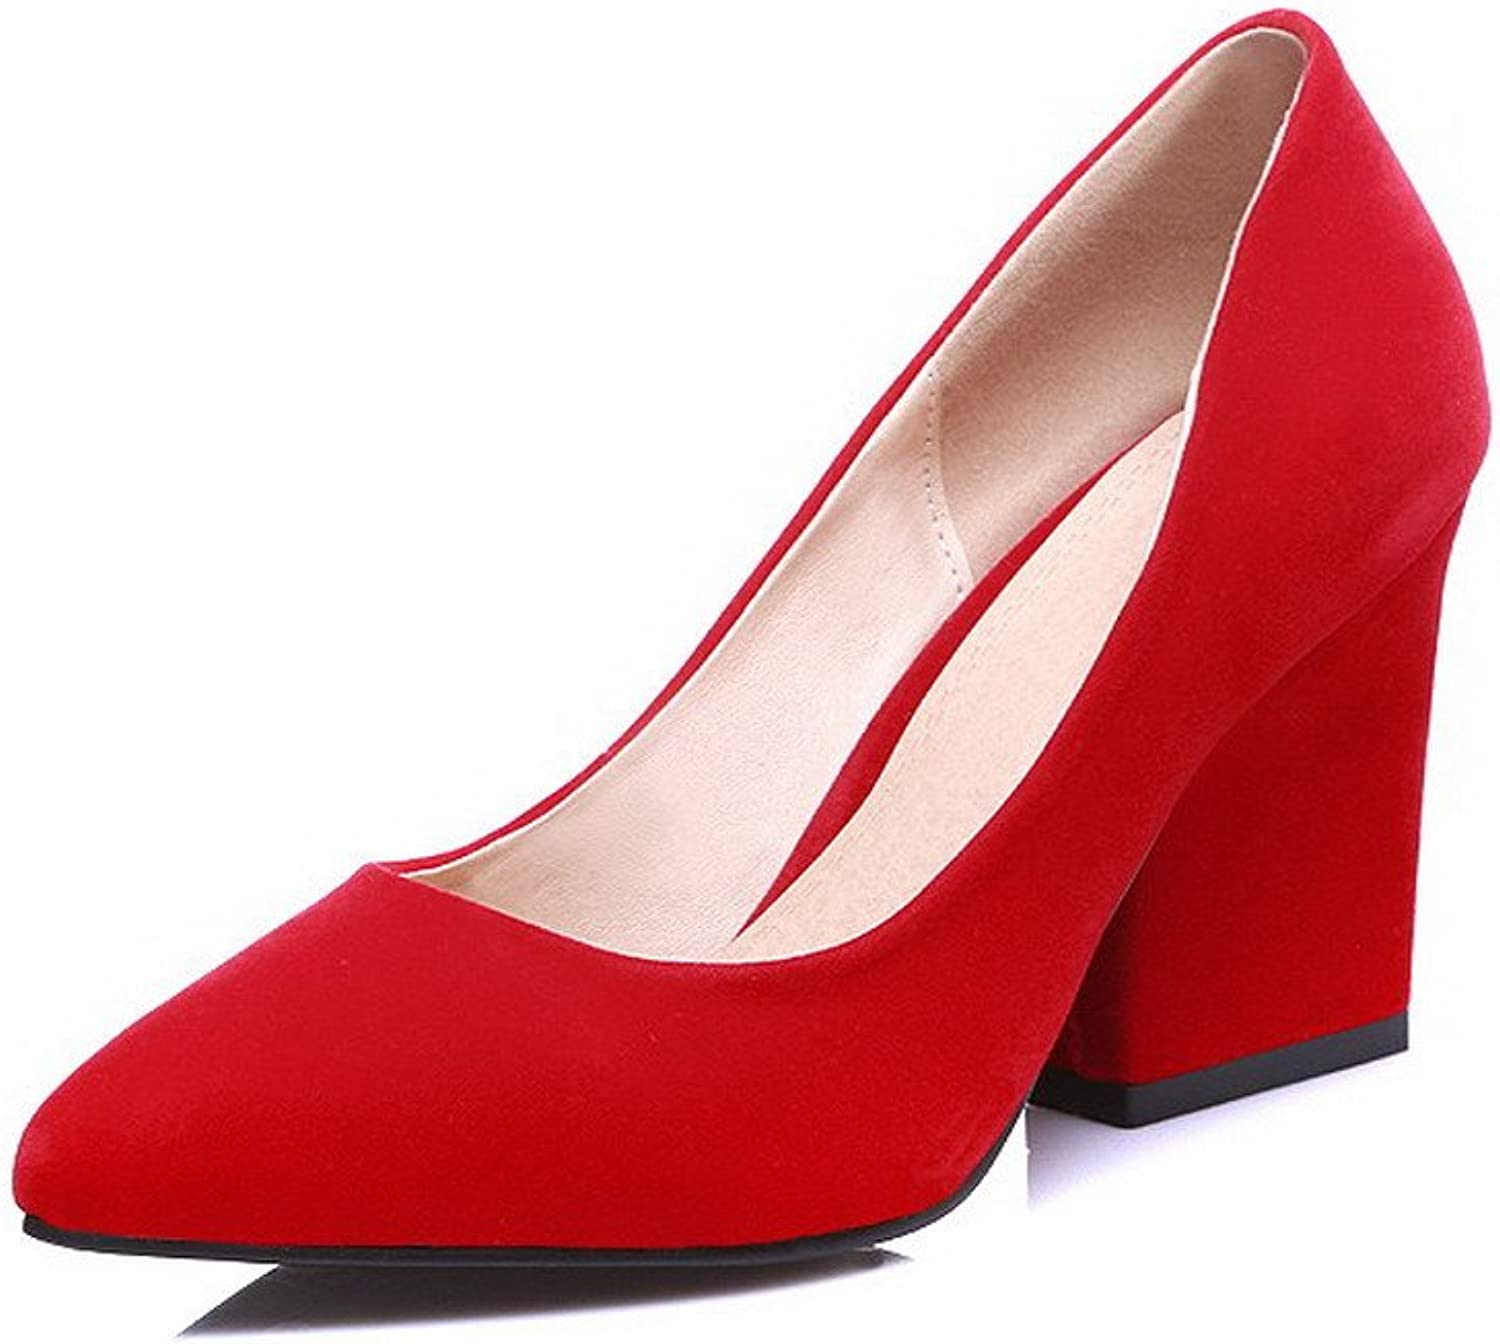 AmoonyFashion Women's Frosted Pointed Closed Toe High Heels Pull On Solid Pumps-shoes